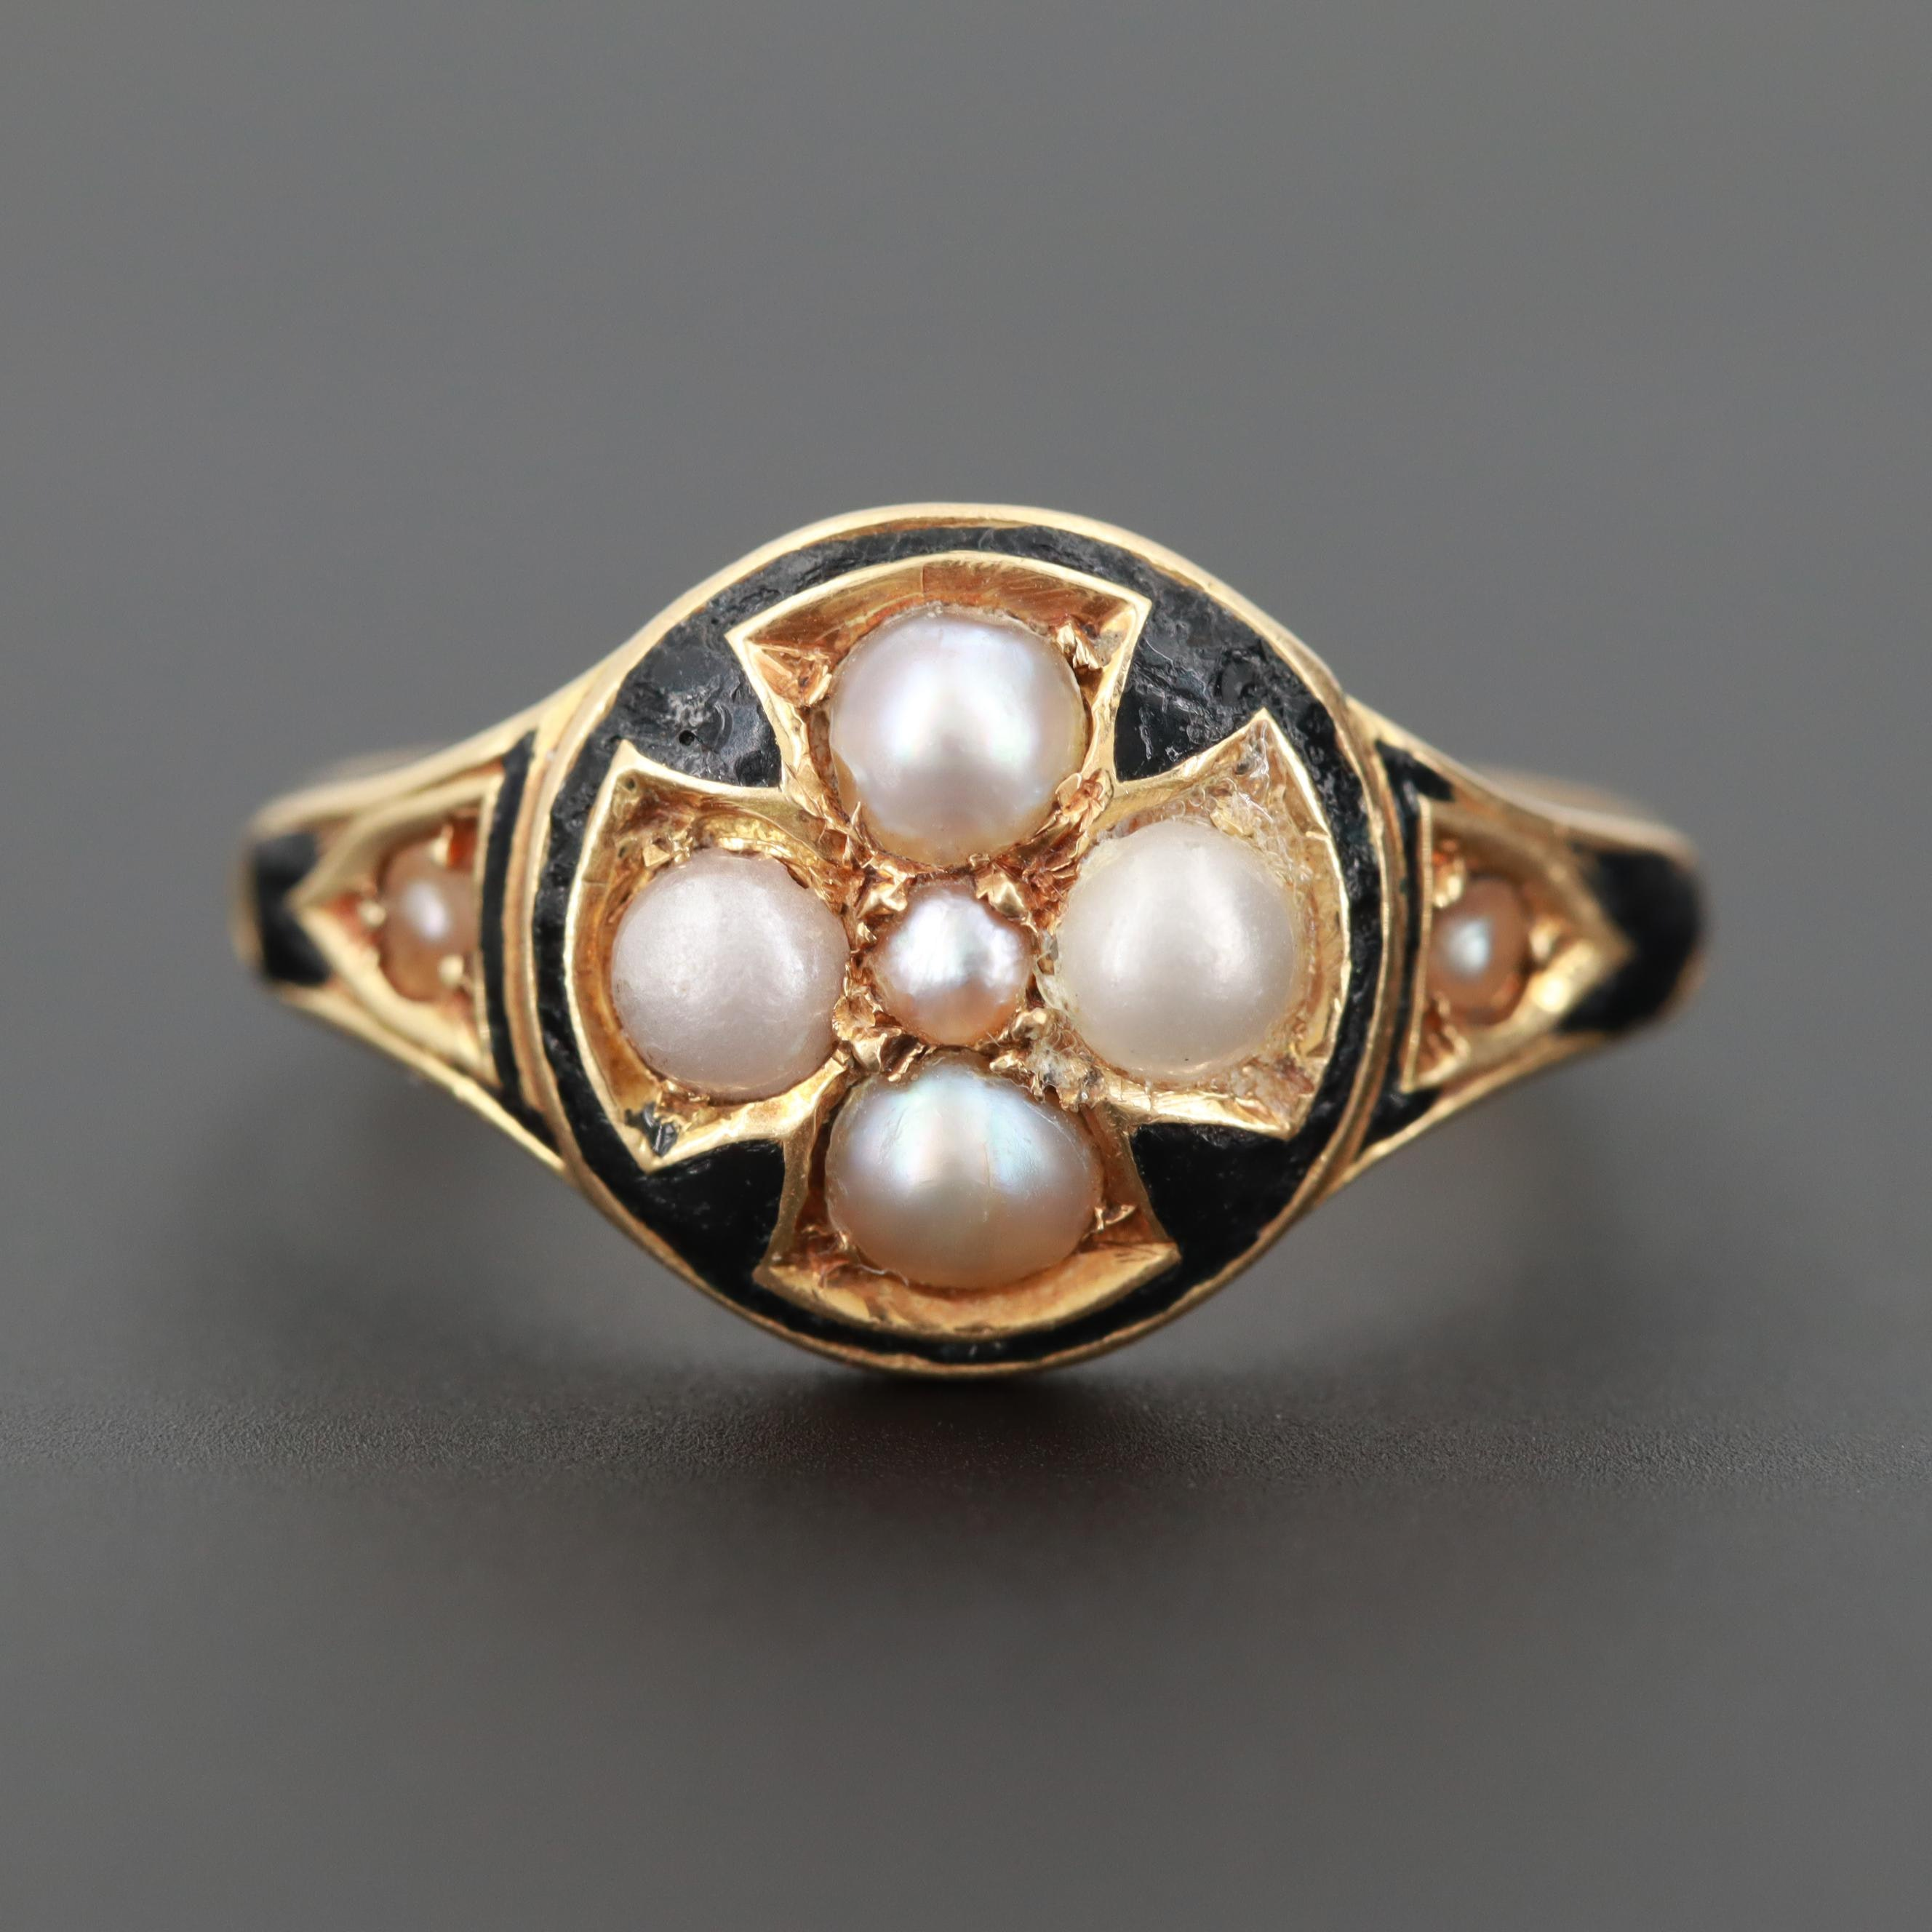 Victorian 18K Enamel and Cultured Pearl Mourning Ring